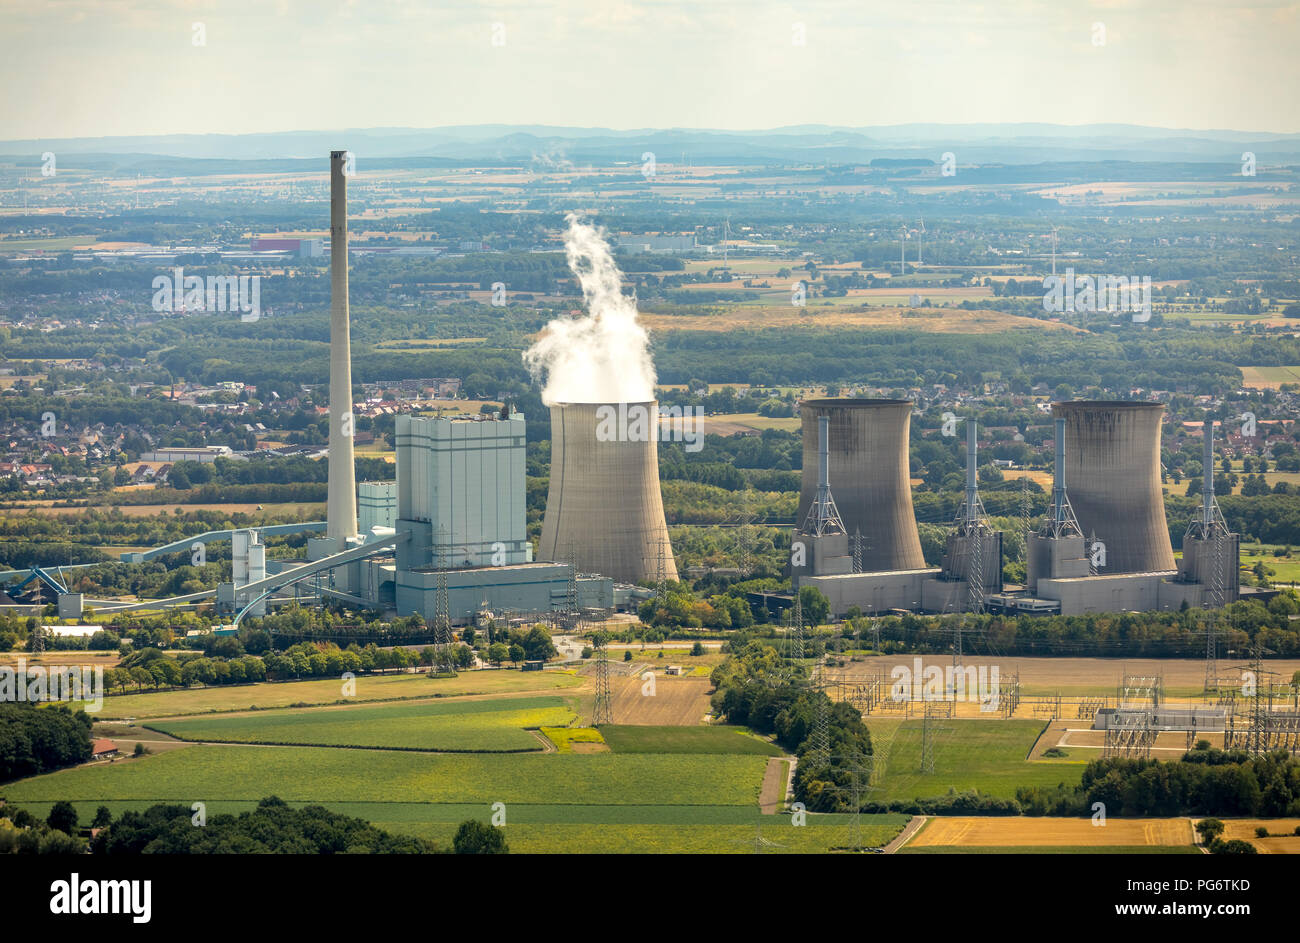 Gersteinwerk, combined steam power plant hard coal and natural gas, RWE AG in the Werner district Stockum, cooling towers, water vapor, emission, chim - Stock Image